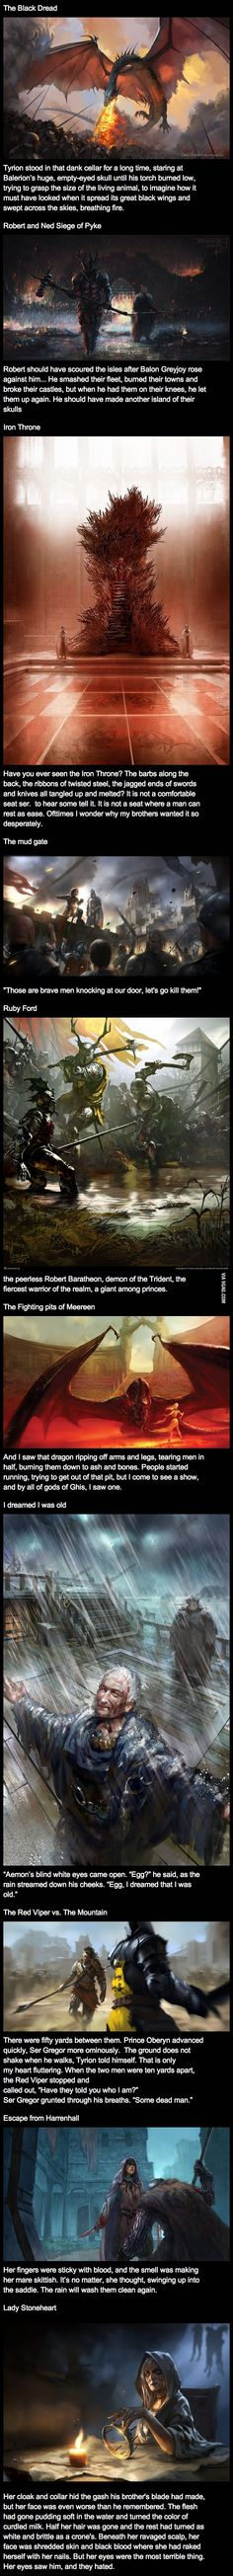 Awesome game of thrones art! *Warning spoilers*